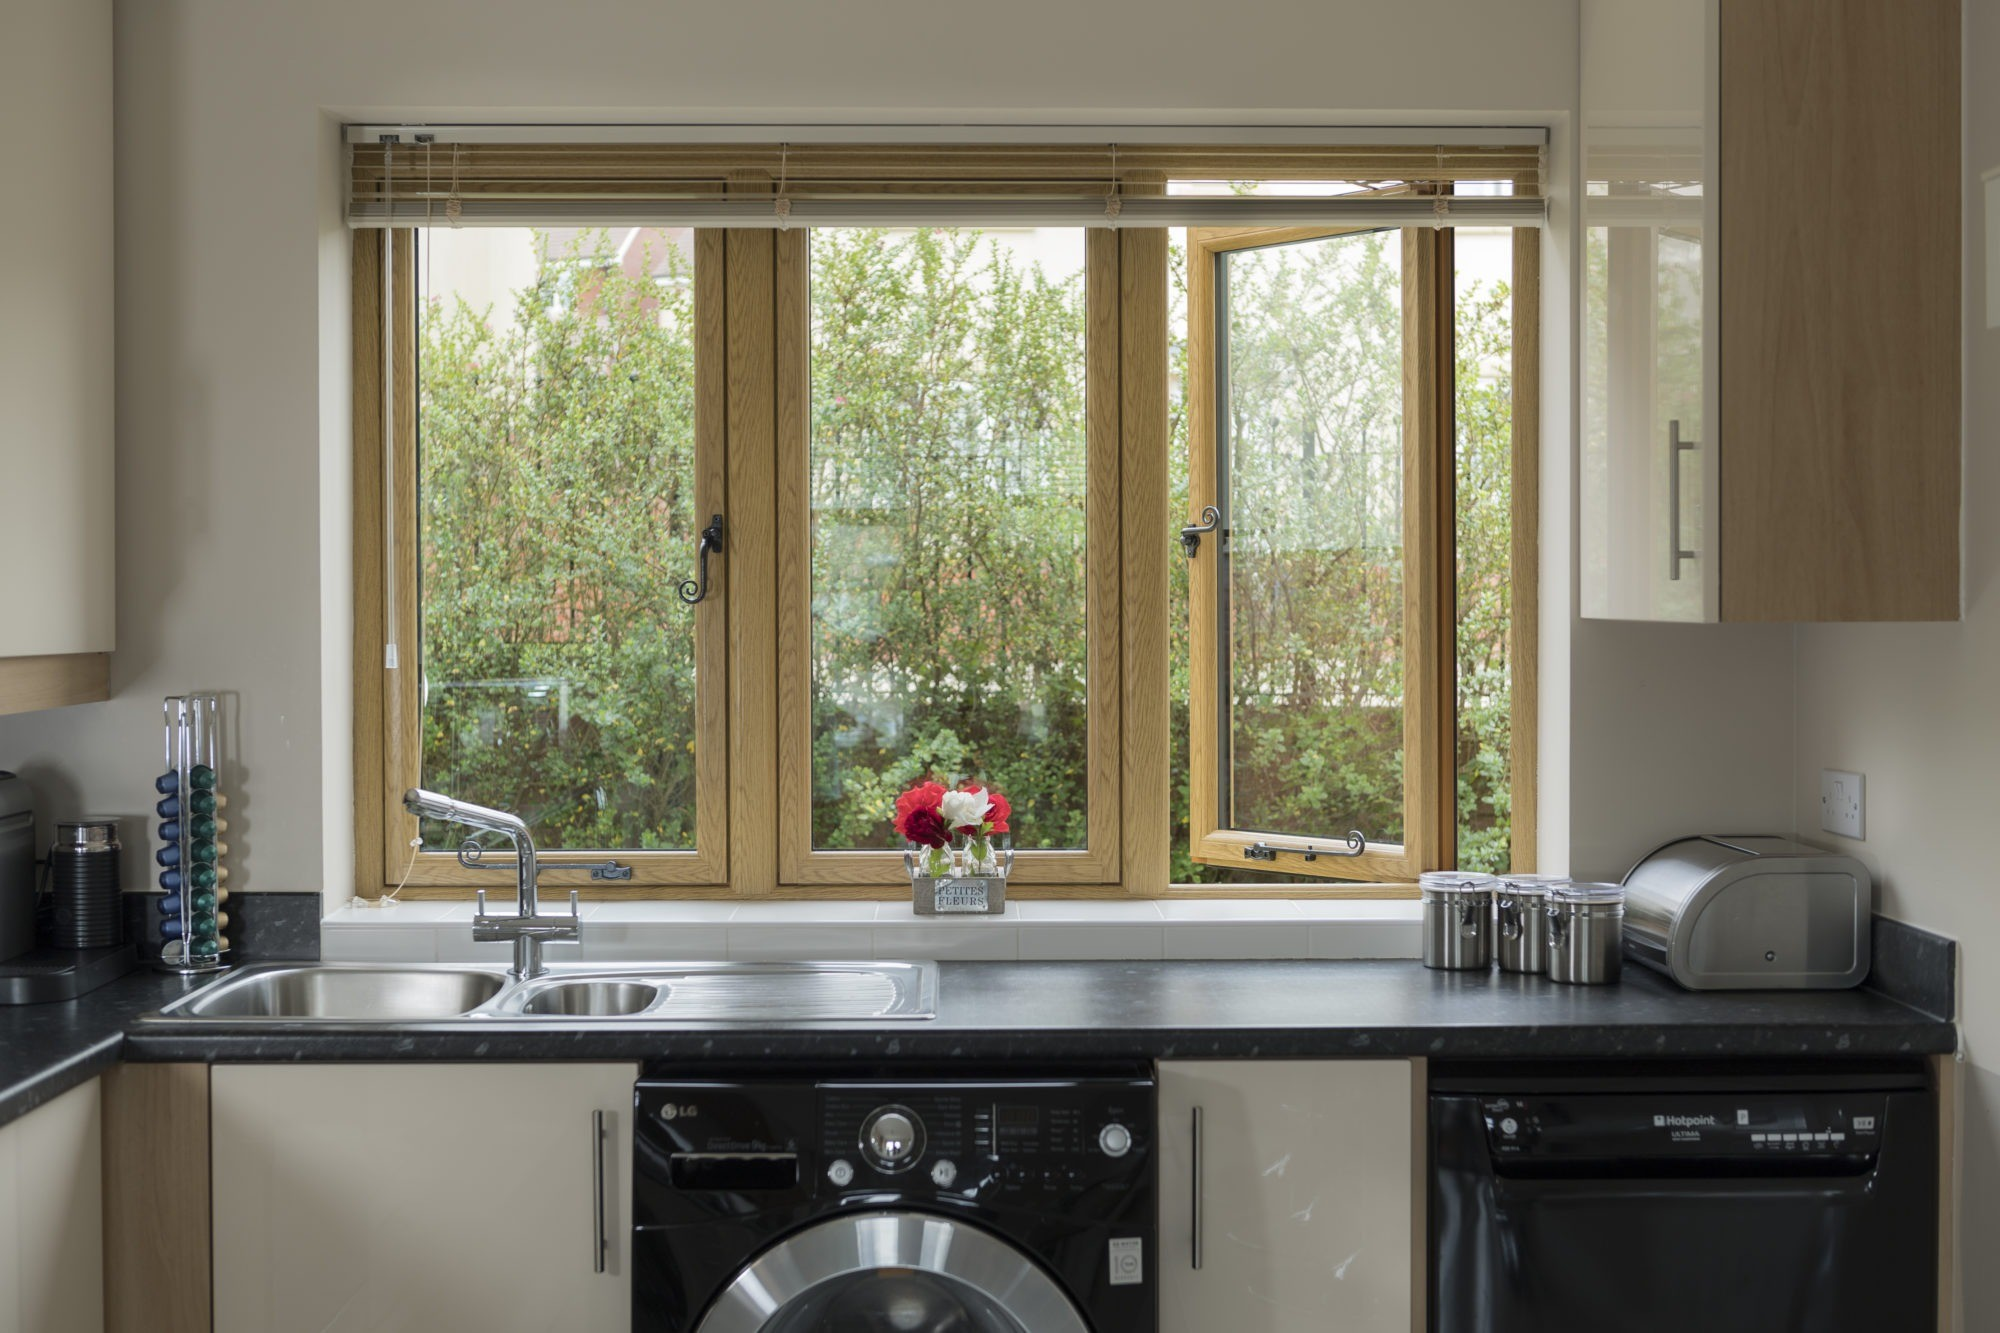 upvc casement window kitchen interior